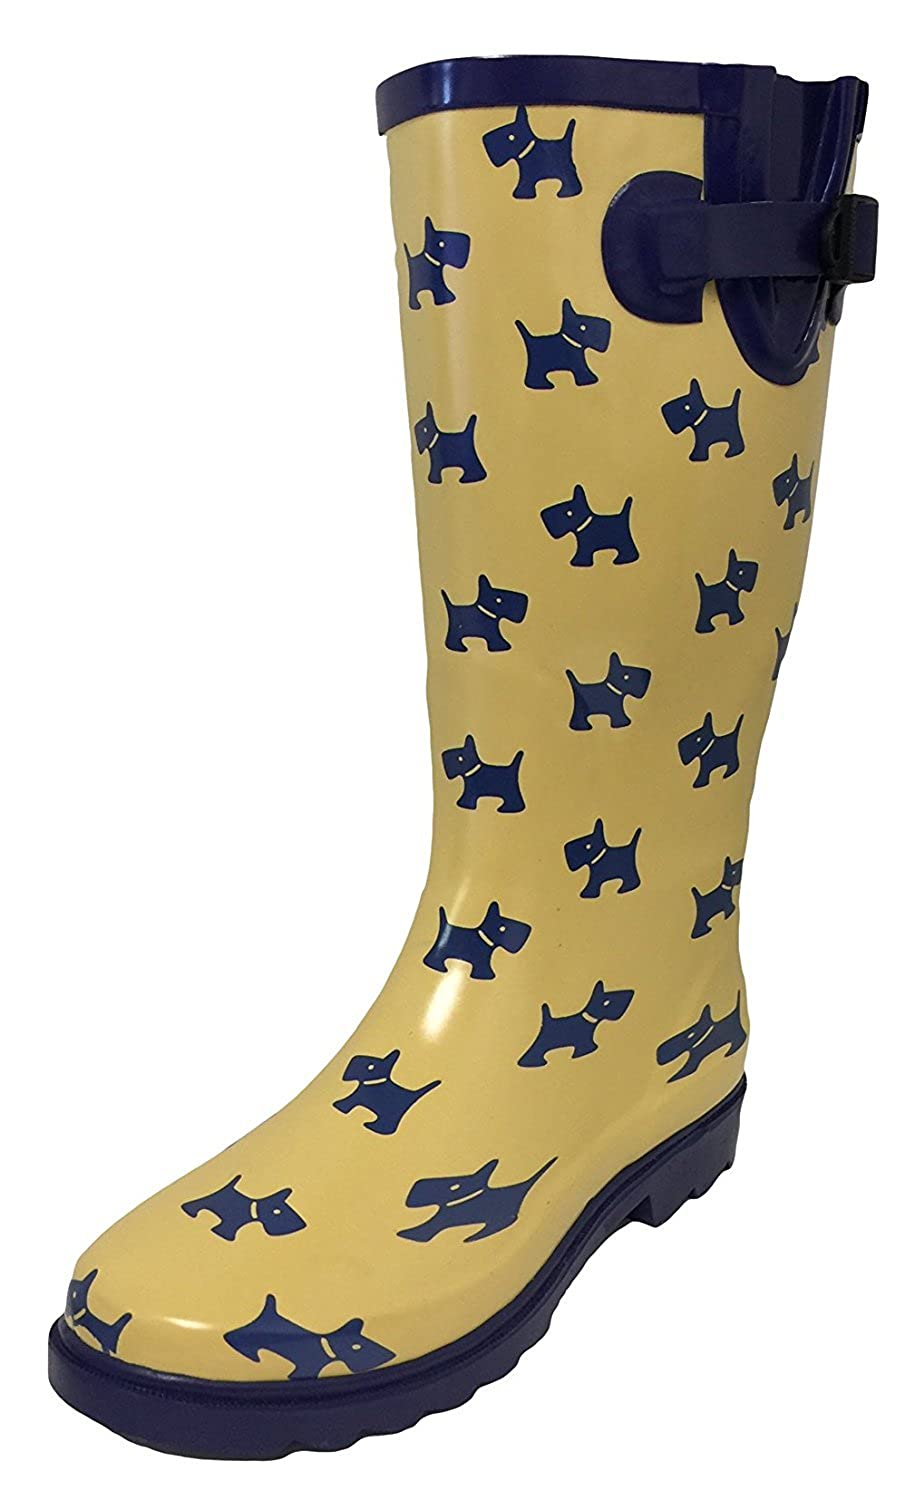 Yellow Puppies G4U Women's Rain Boots Multiple Styles color Mid Calf Wellies Buckle Fashion Rubber Knee High Snow shoes